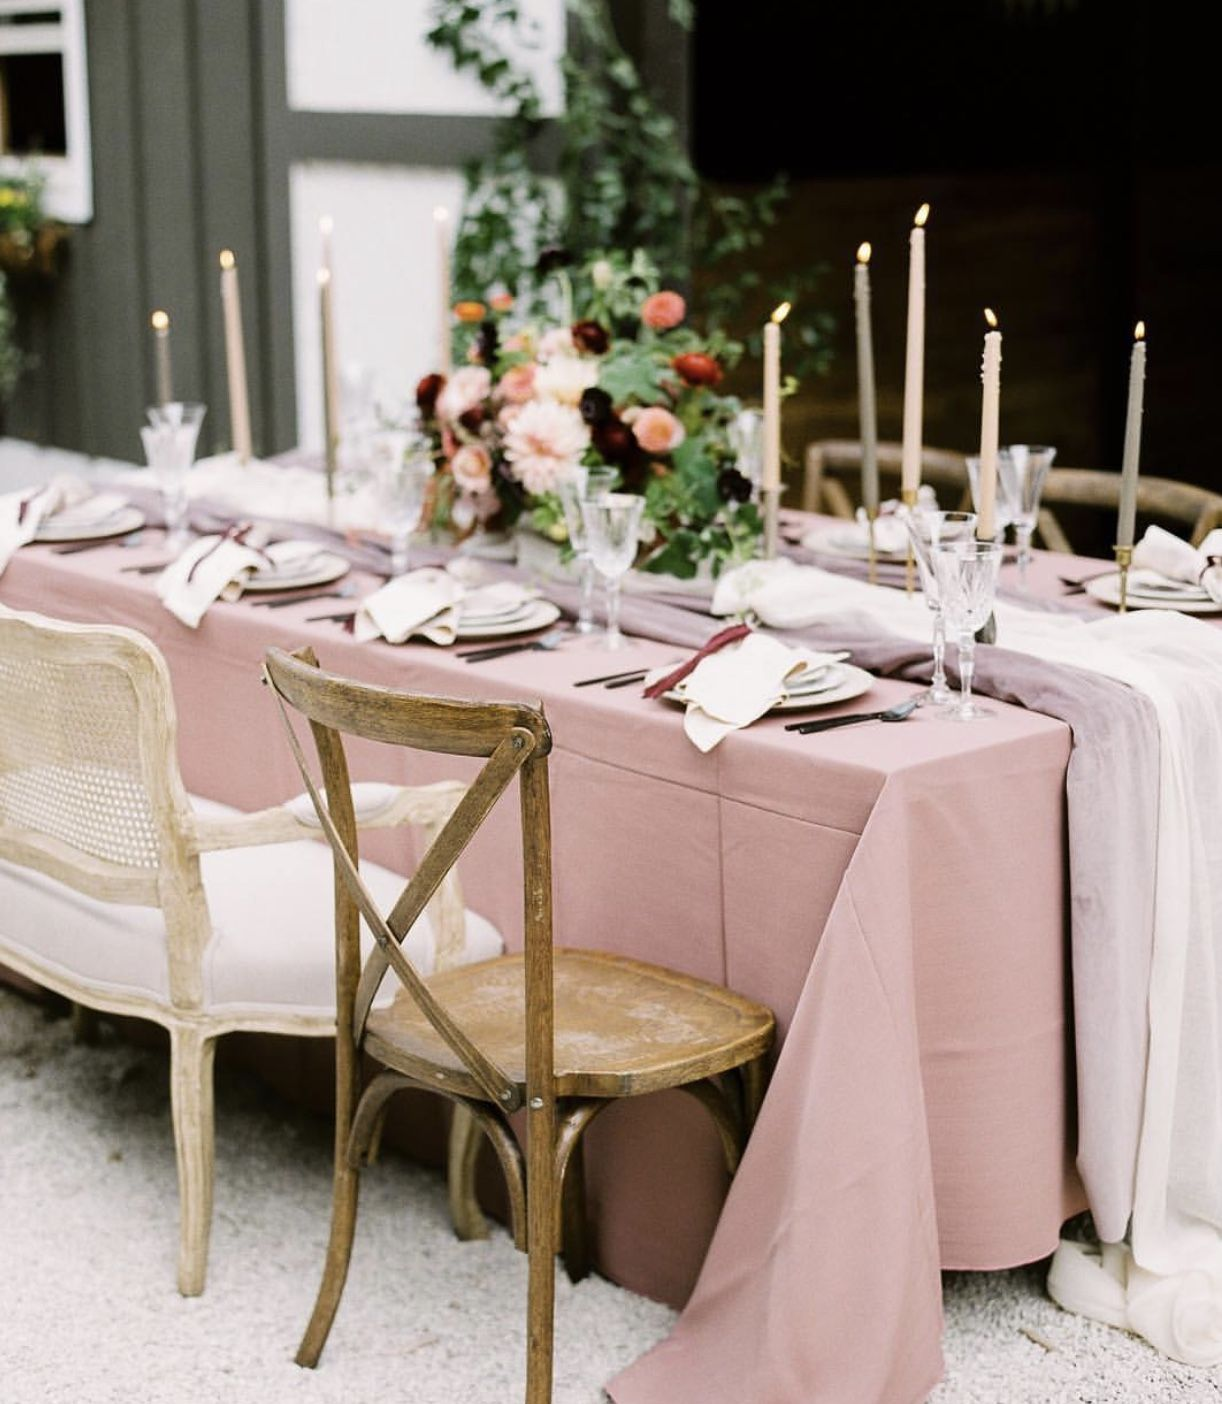 Pin By Katy Bjurstrom On Wedding Wedding Table Linens Table